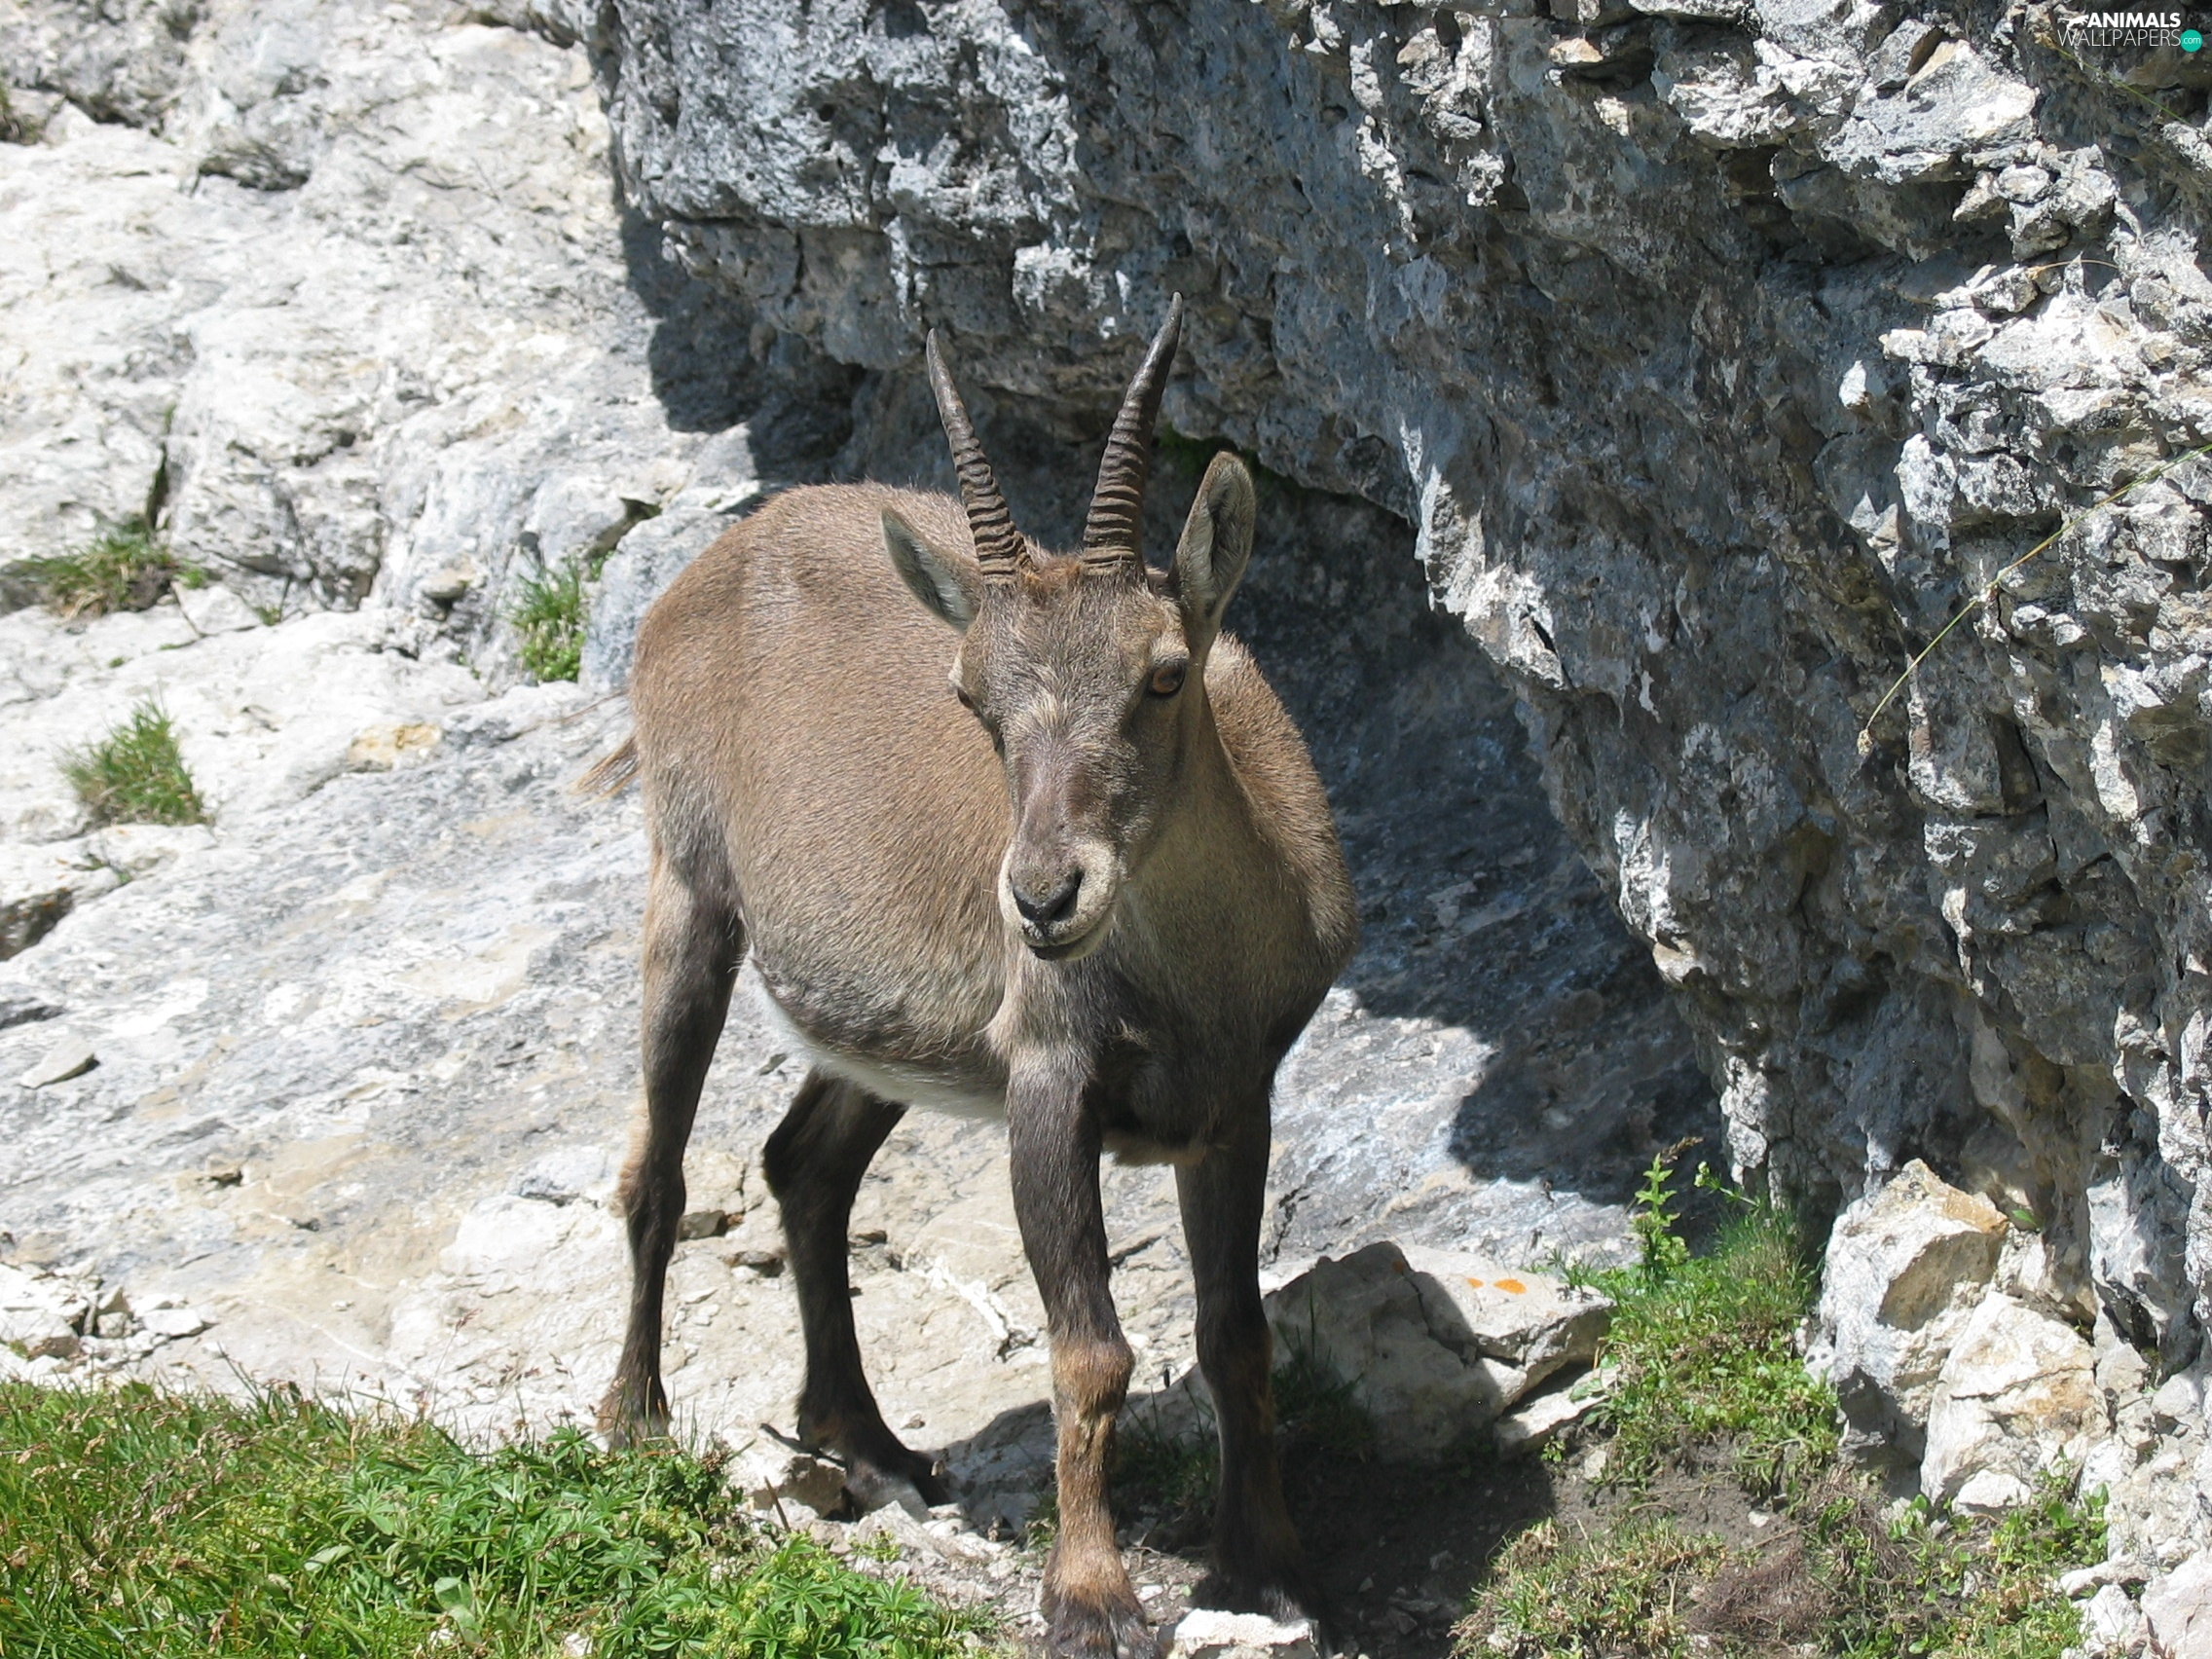 grass, ibex, Rocks